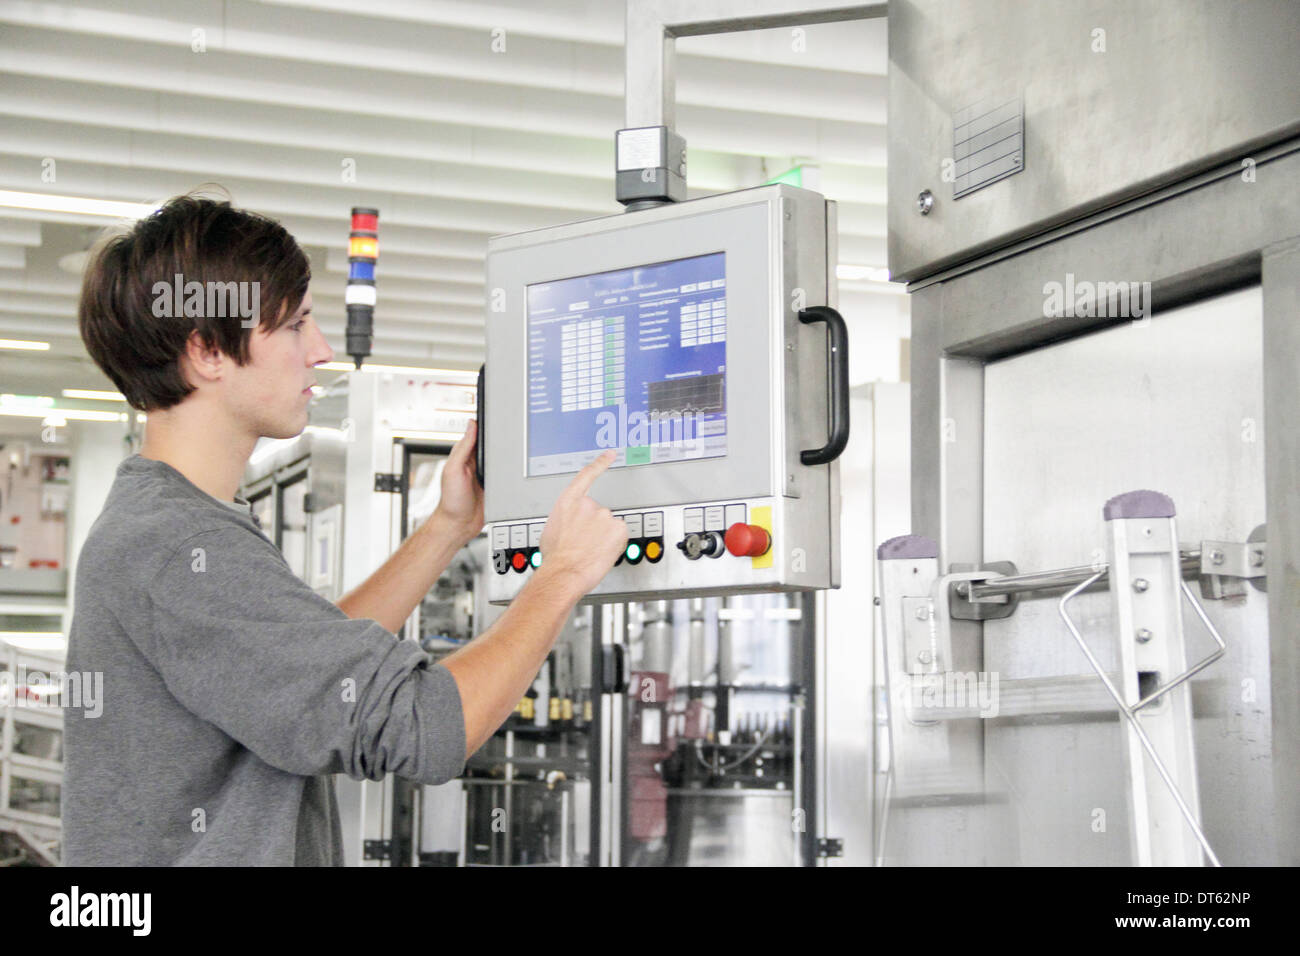 Man using control panel in brewery - Stock Image